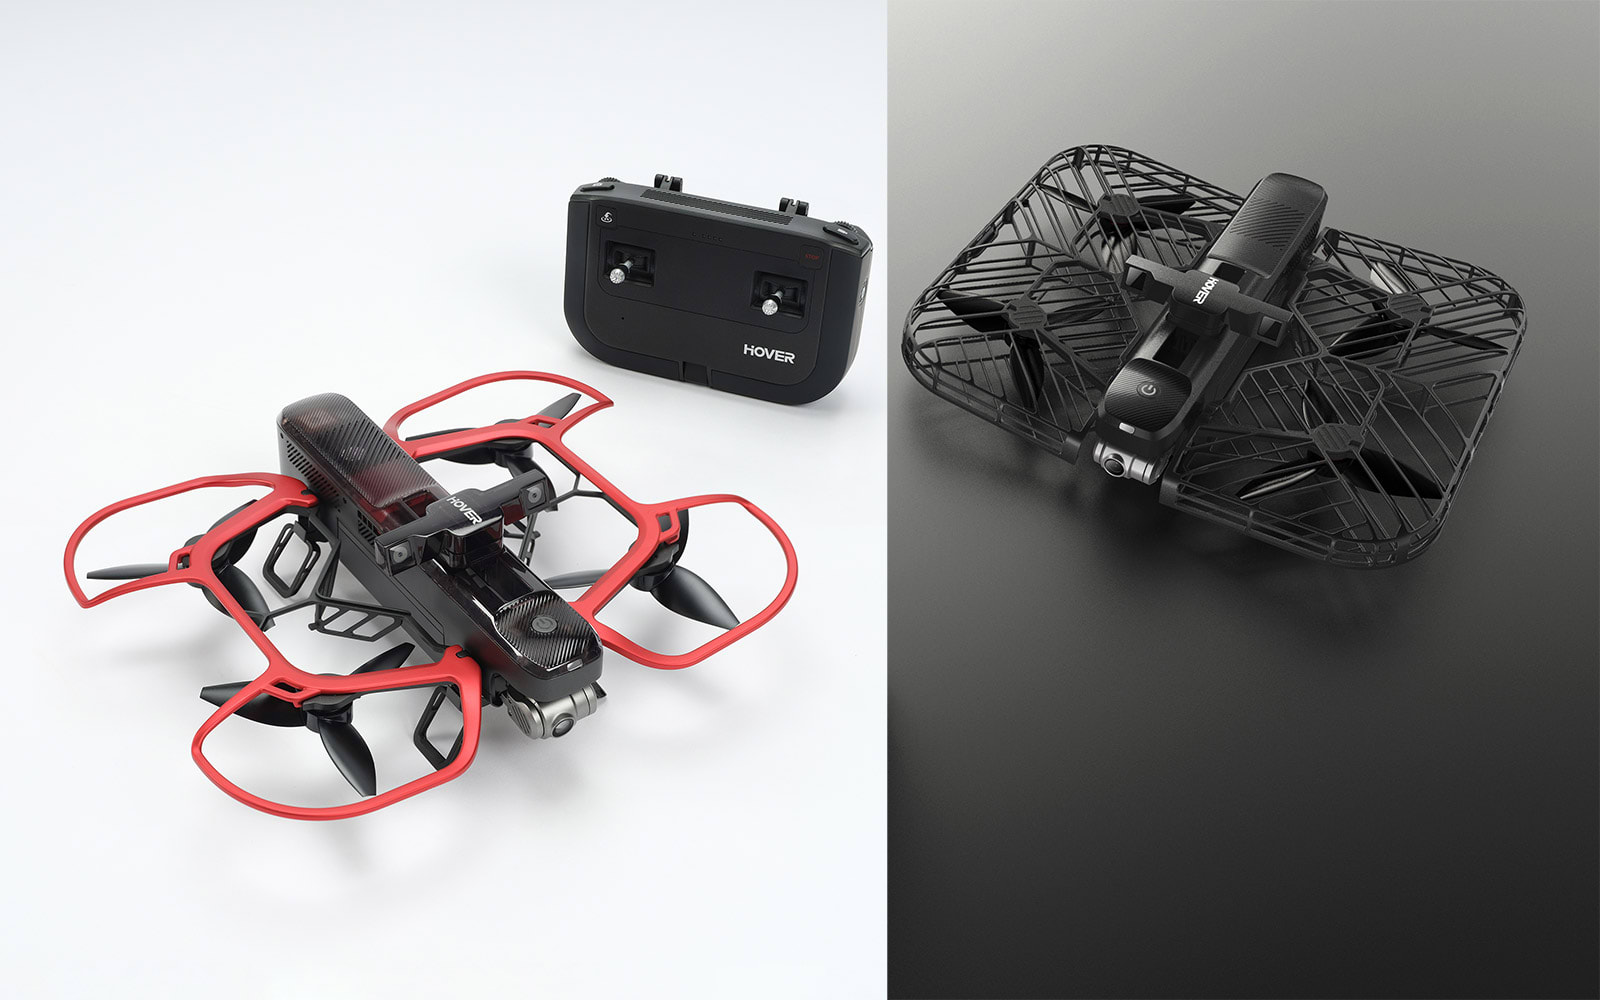 Hover 2 drone in BlastOff mode and default configuration